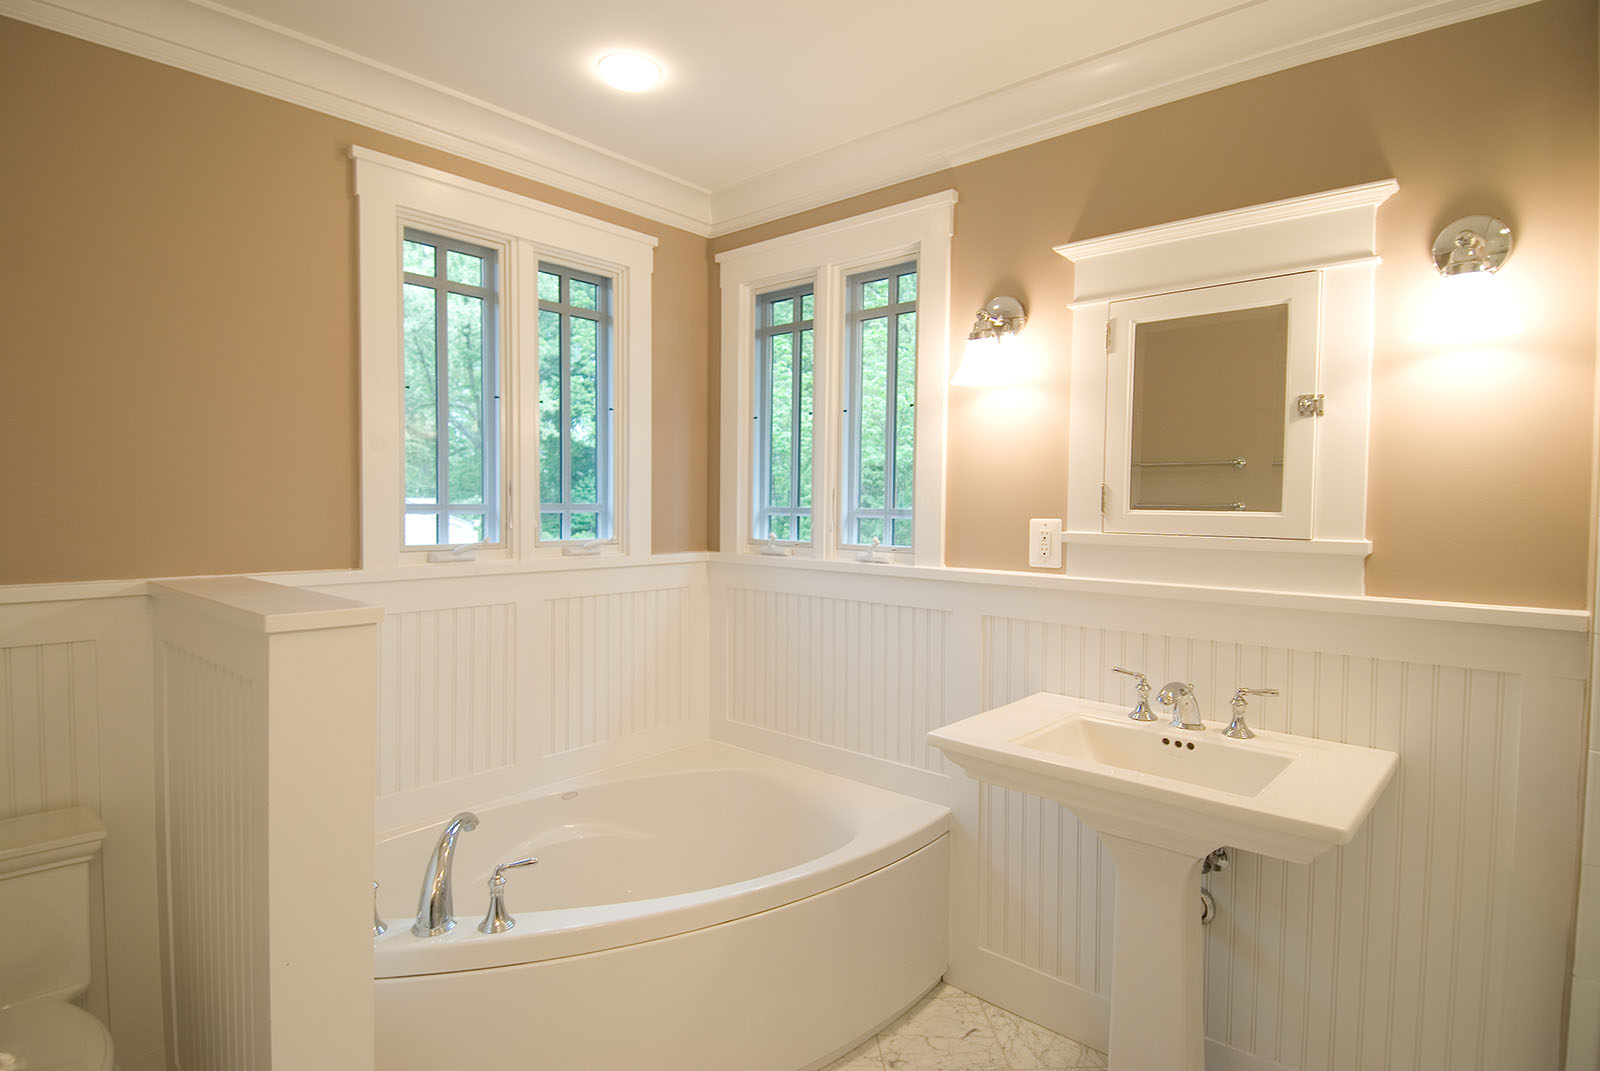 Old Bathroom Remodel Inspiration Bathroom Remodeling  Old Dominion Building Group Design Ideas